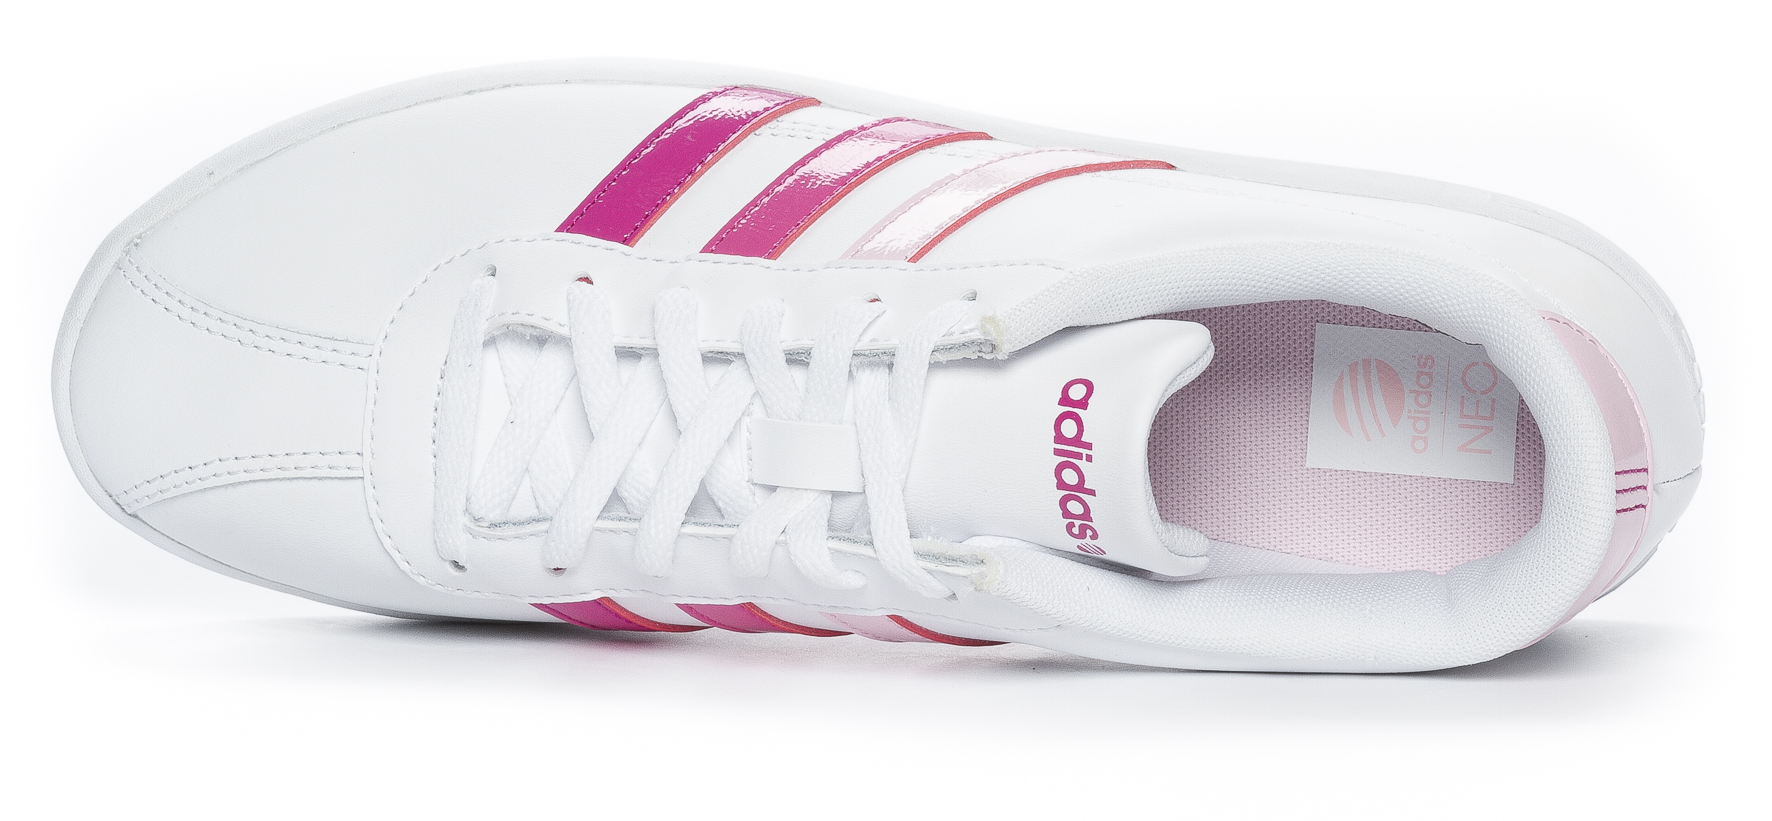 finest selection 0a558 3cf4b Adidas Neo Sneakers - Vita 285600 feetfirst.se